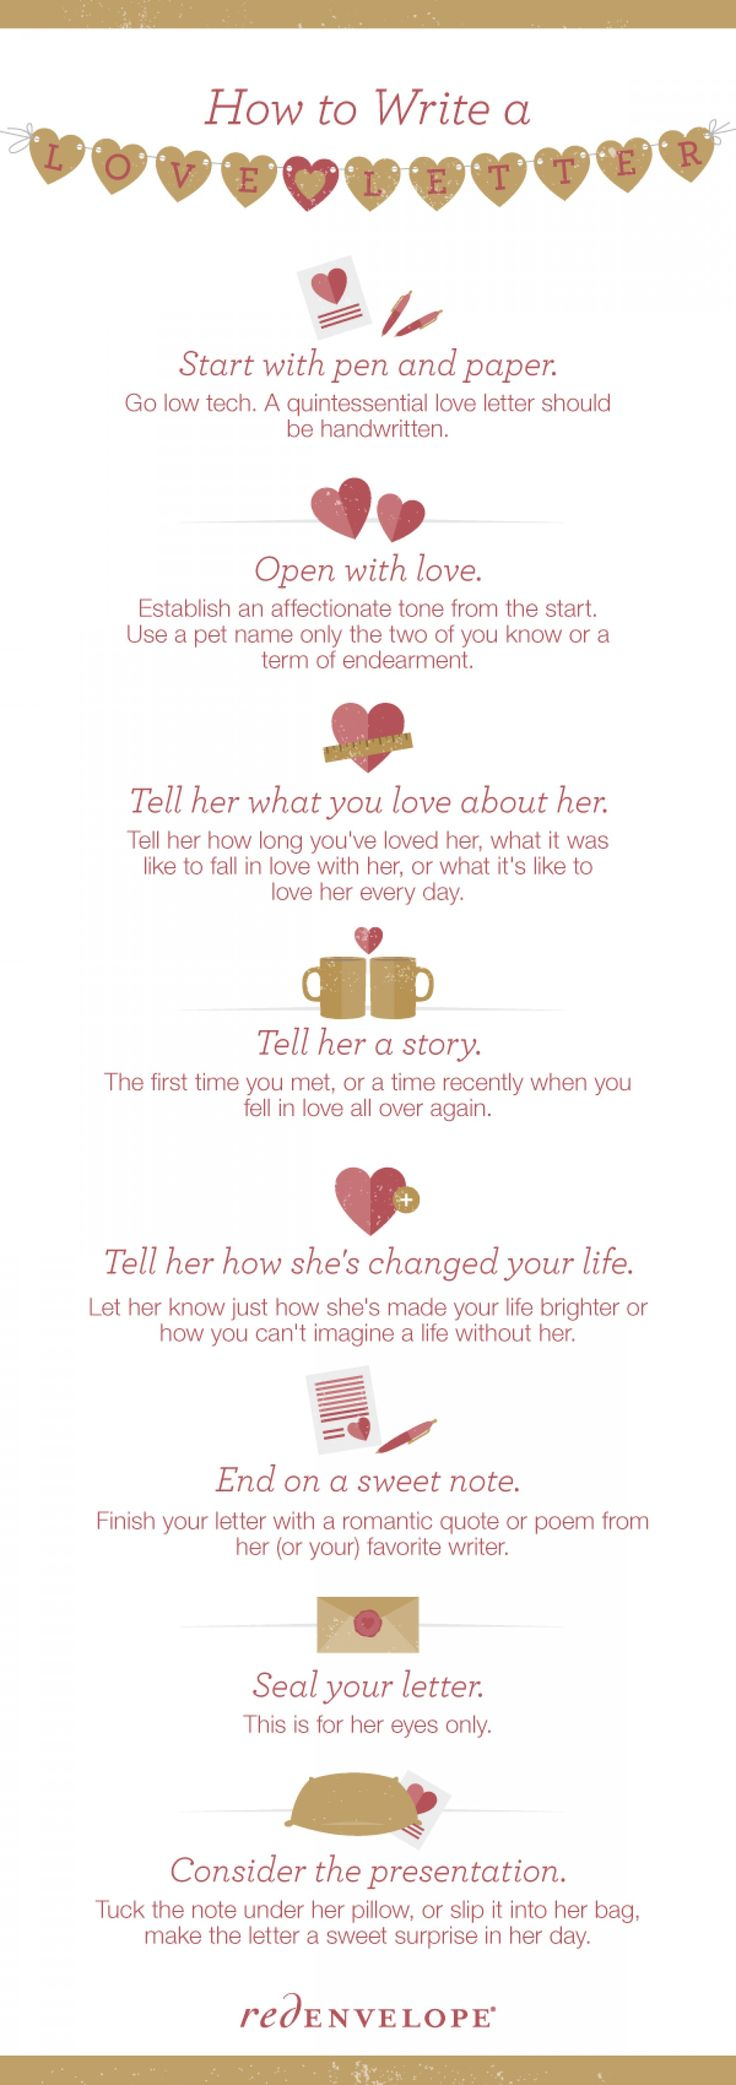 How To Write A Love Letter #Infographic #LoveLetter #howTo